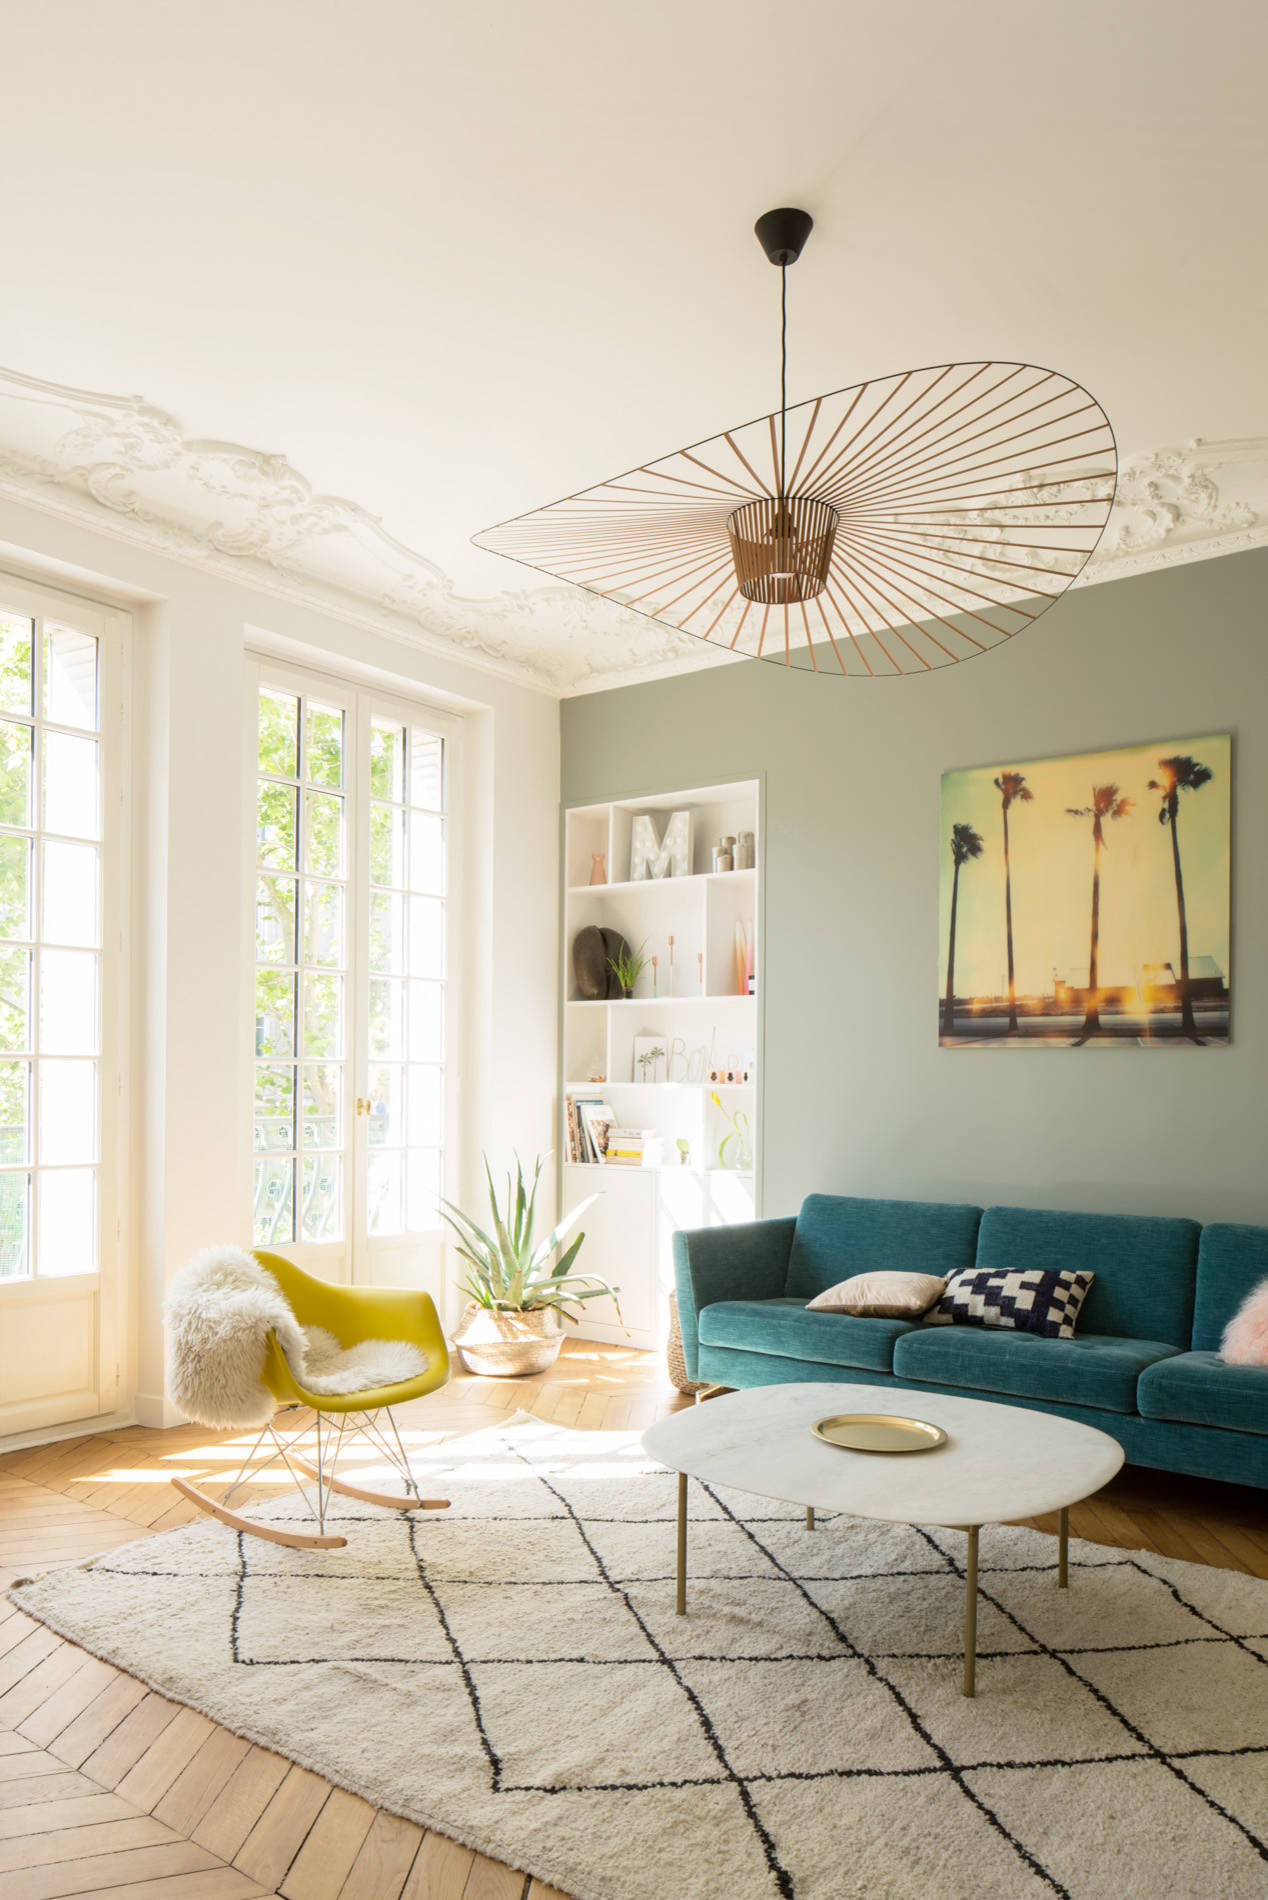 75 Beautiful Scandinavian Living Room Pictures Ideas December 2020 Houzz